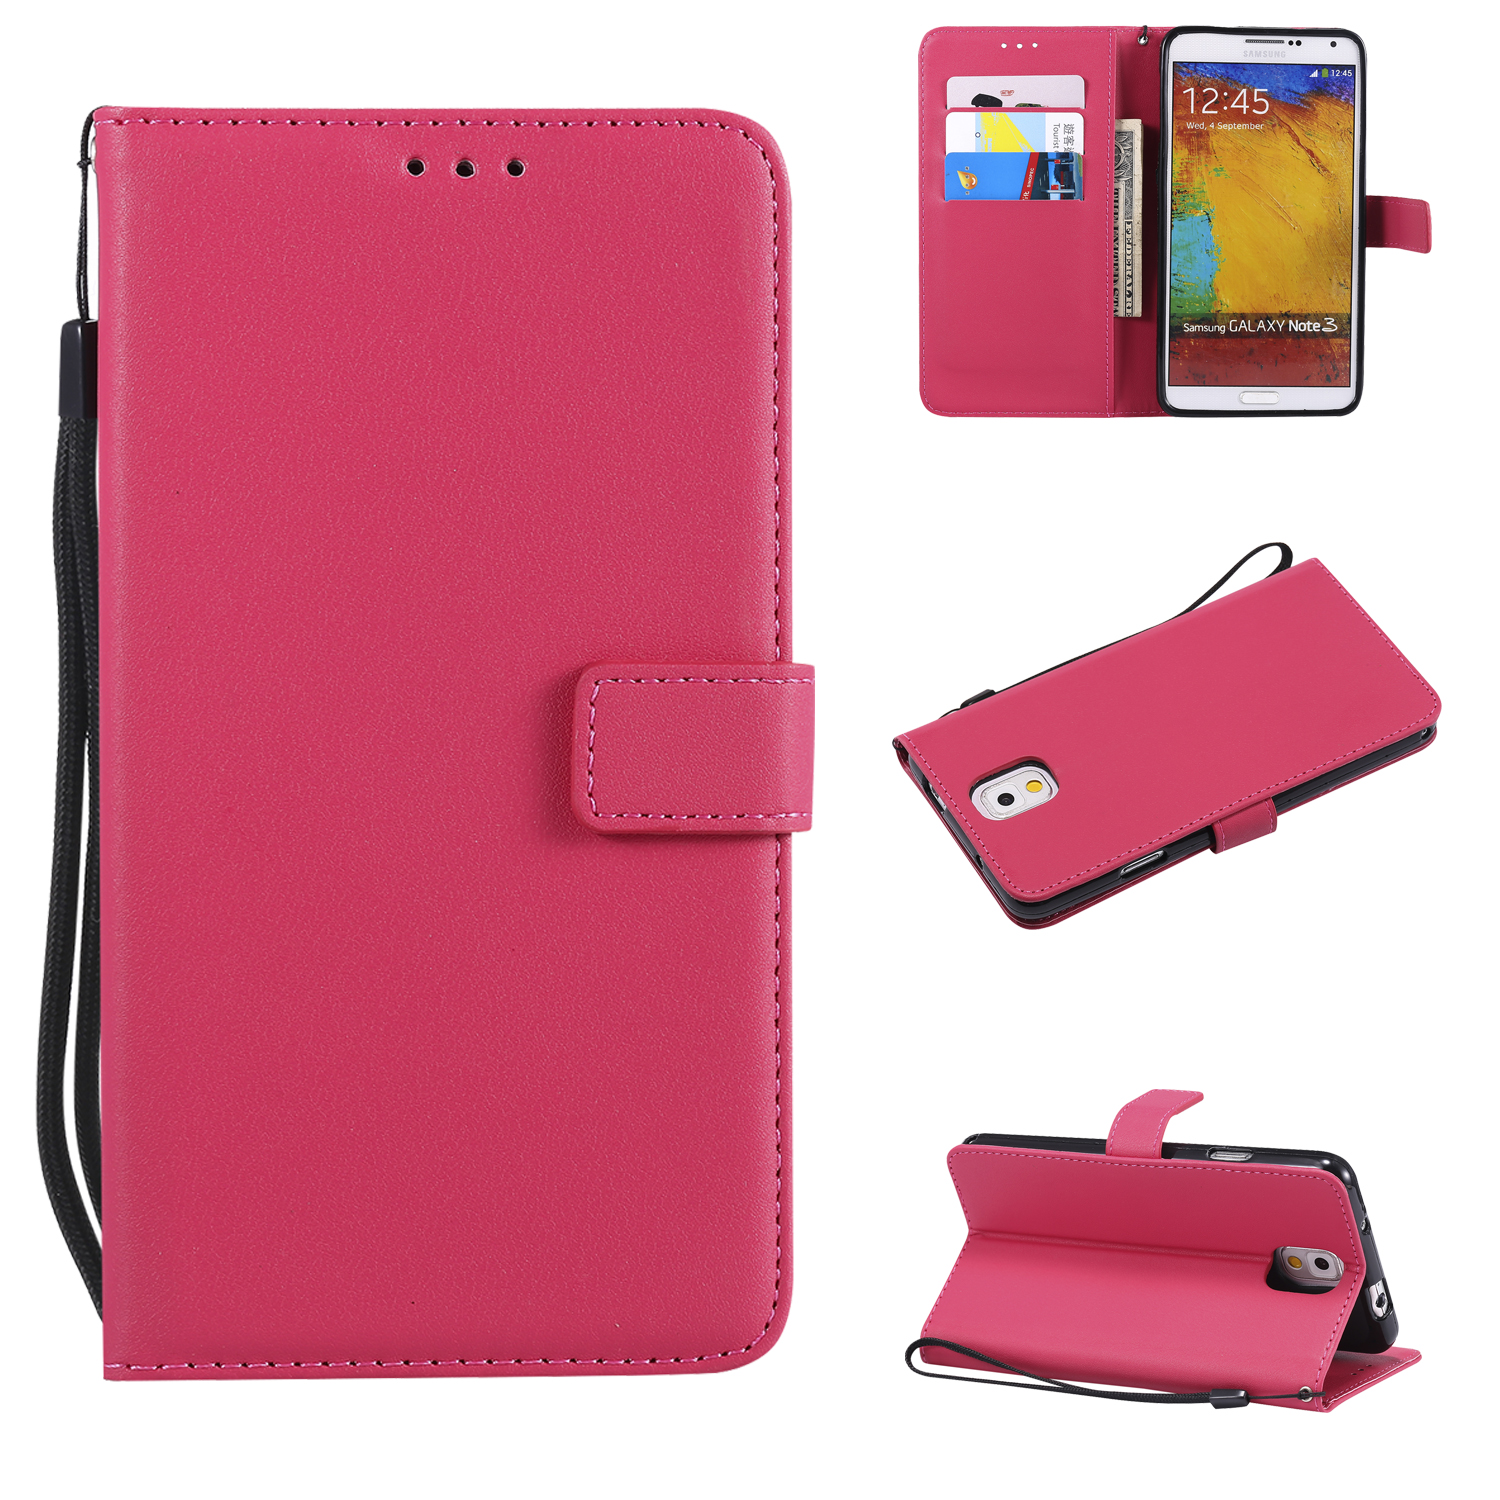 Flip Leather Case for Samsung Galaxy Note 3 Cover Note3 SM N900 SM-N900 N9000 SM-N9000Q N9002 SM-N9002 N9005 SM-N9005 Phone Bags